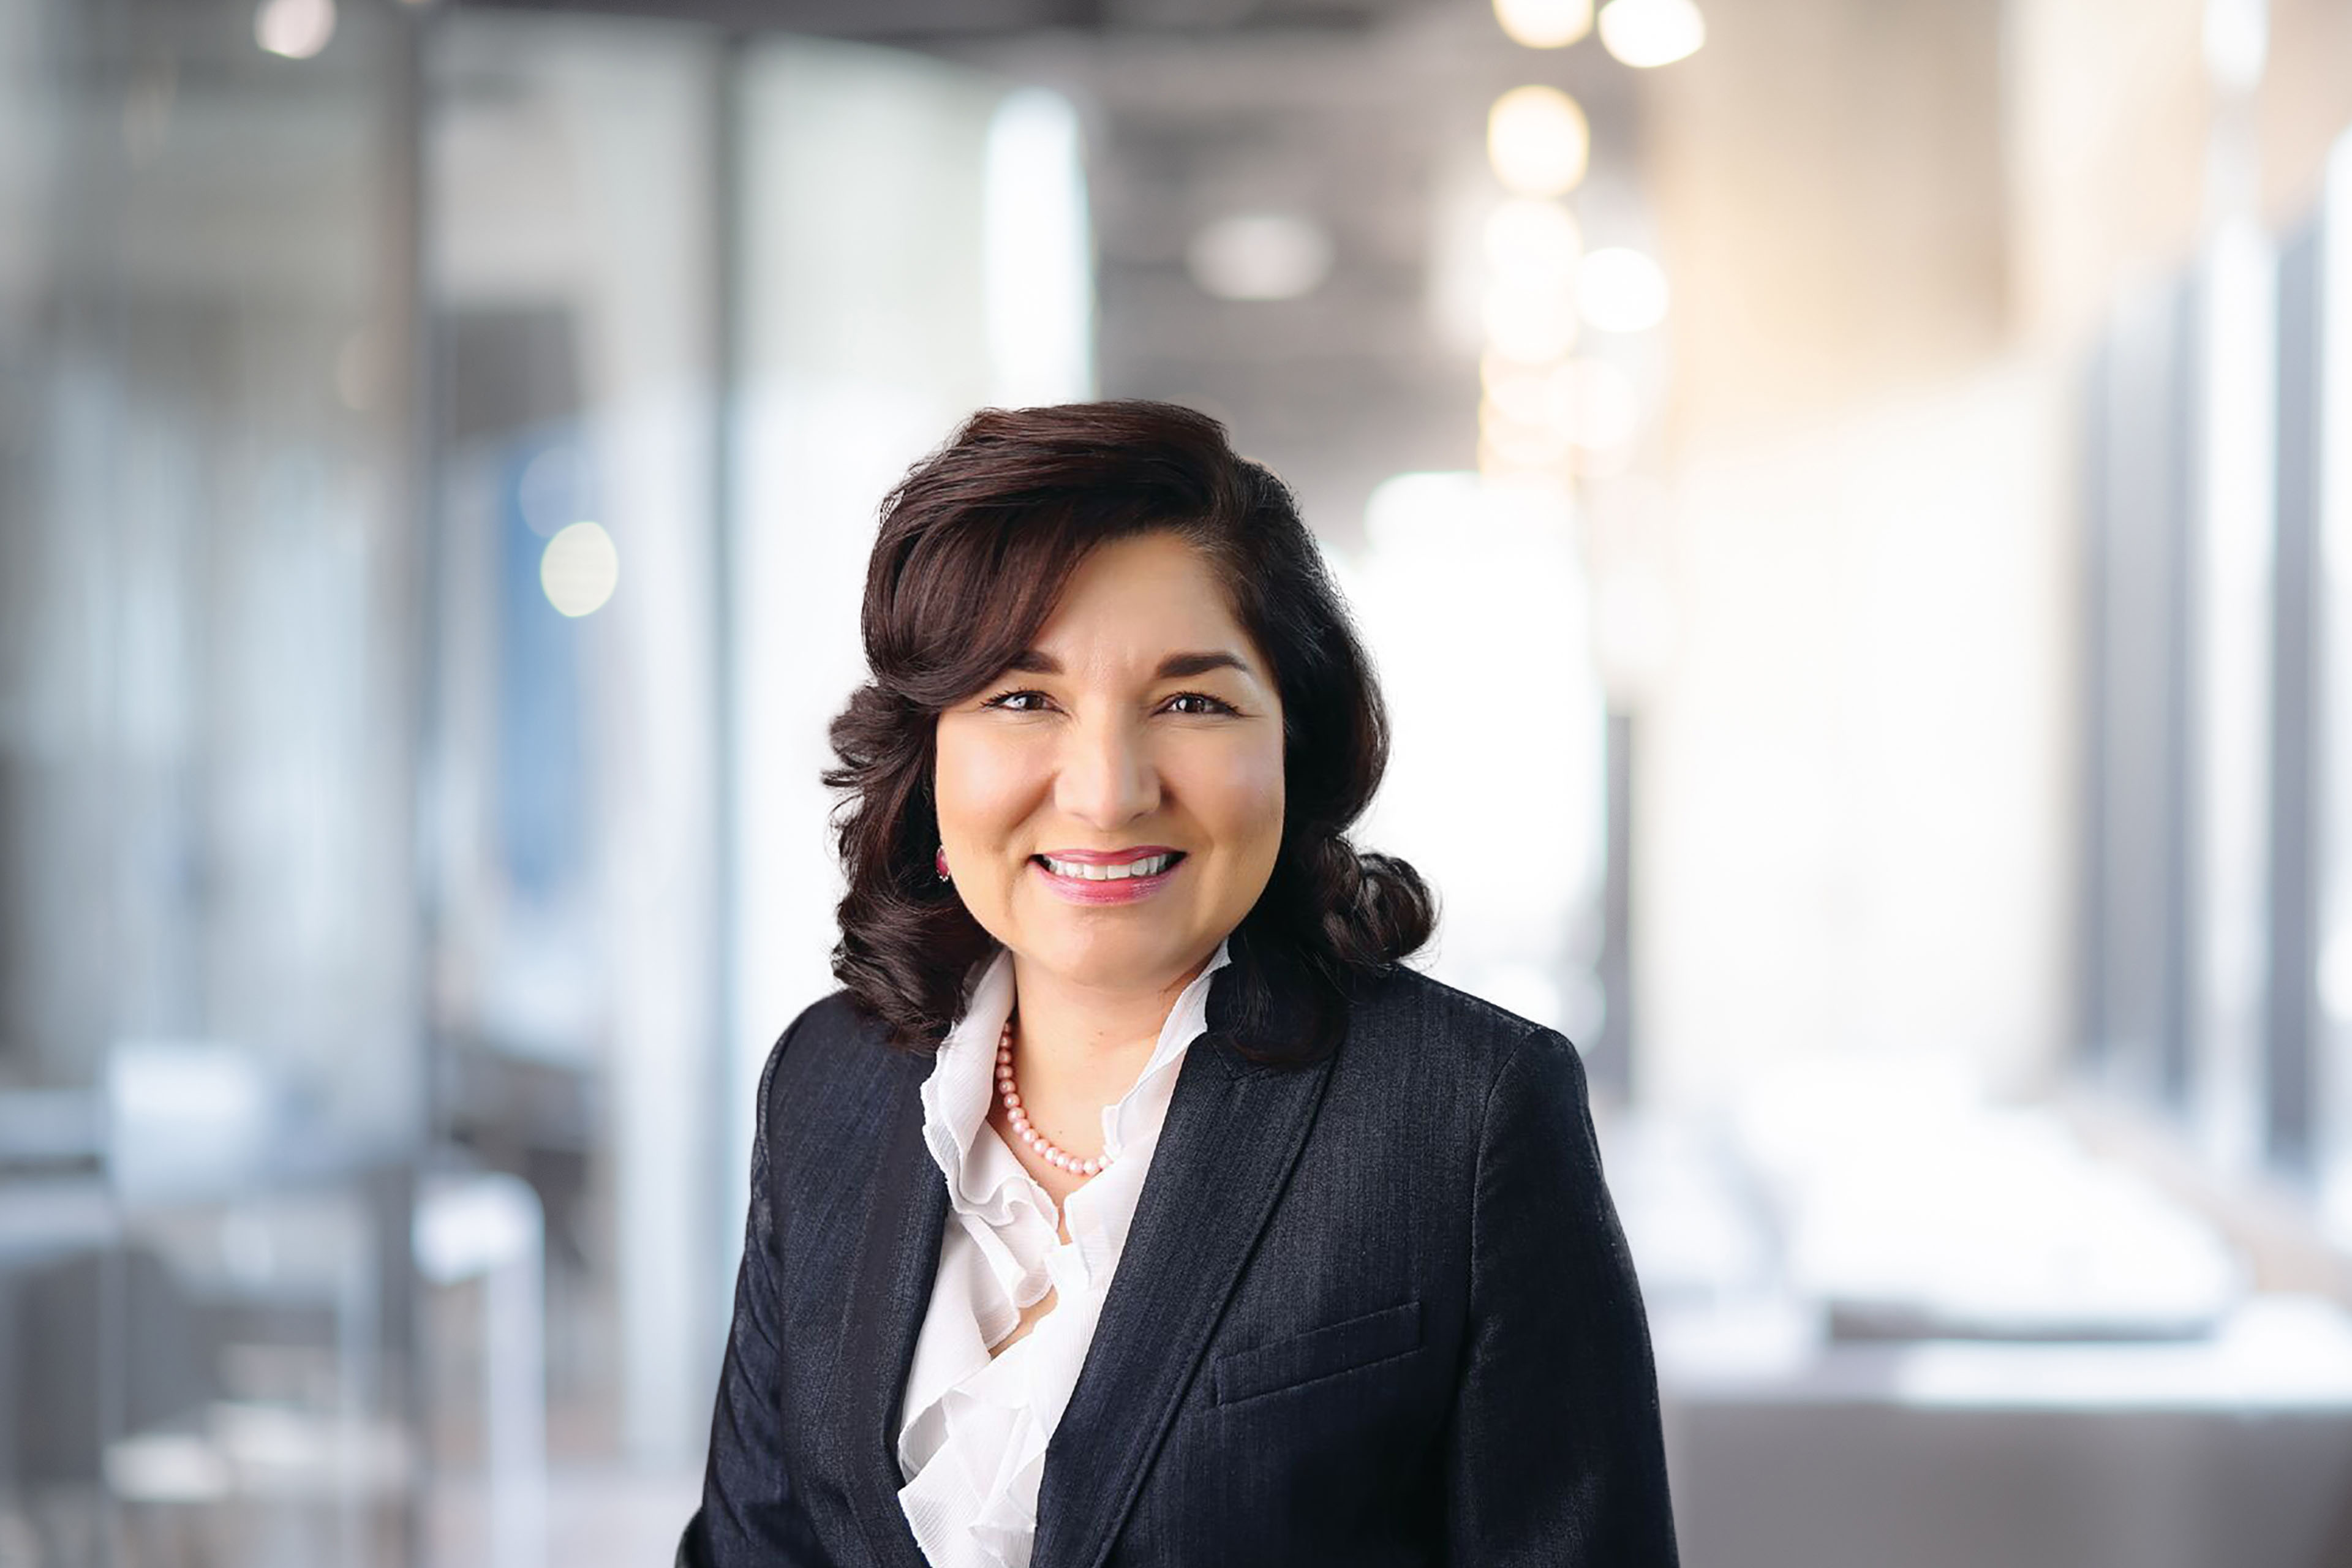 Maria Salinas, Los Angeles Area Chamber of Commerce